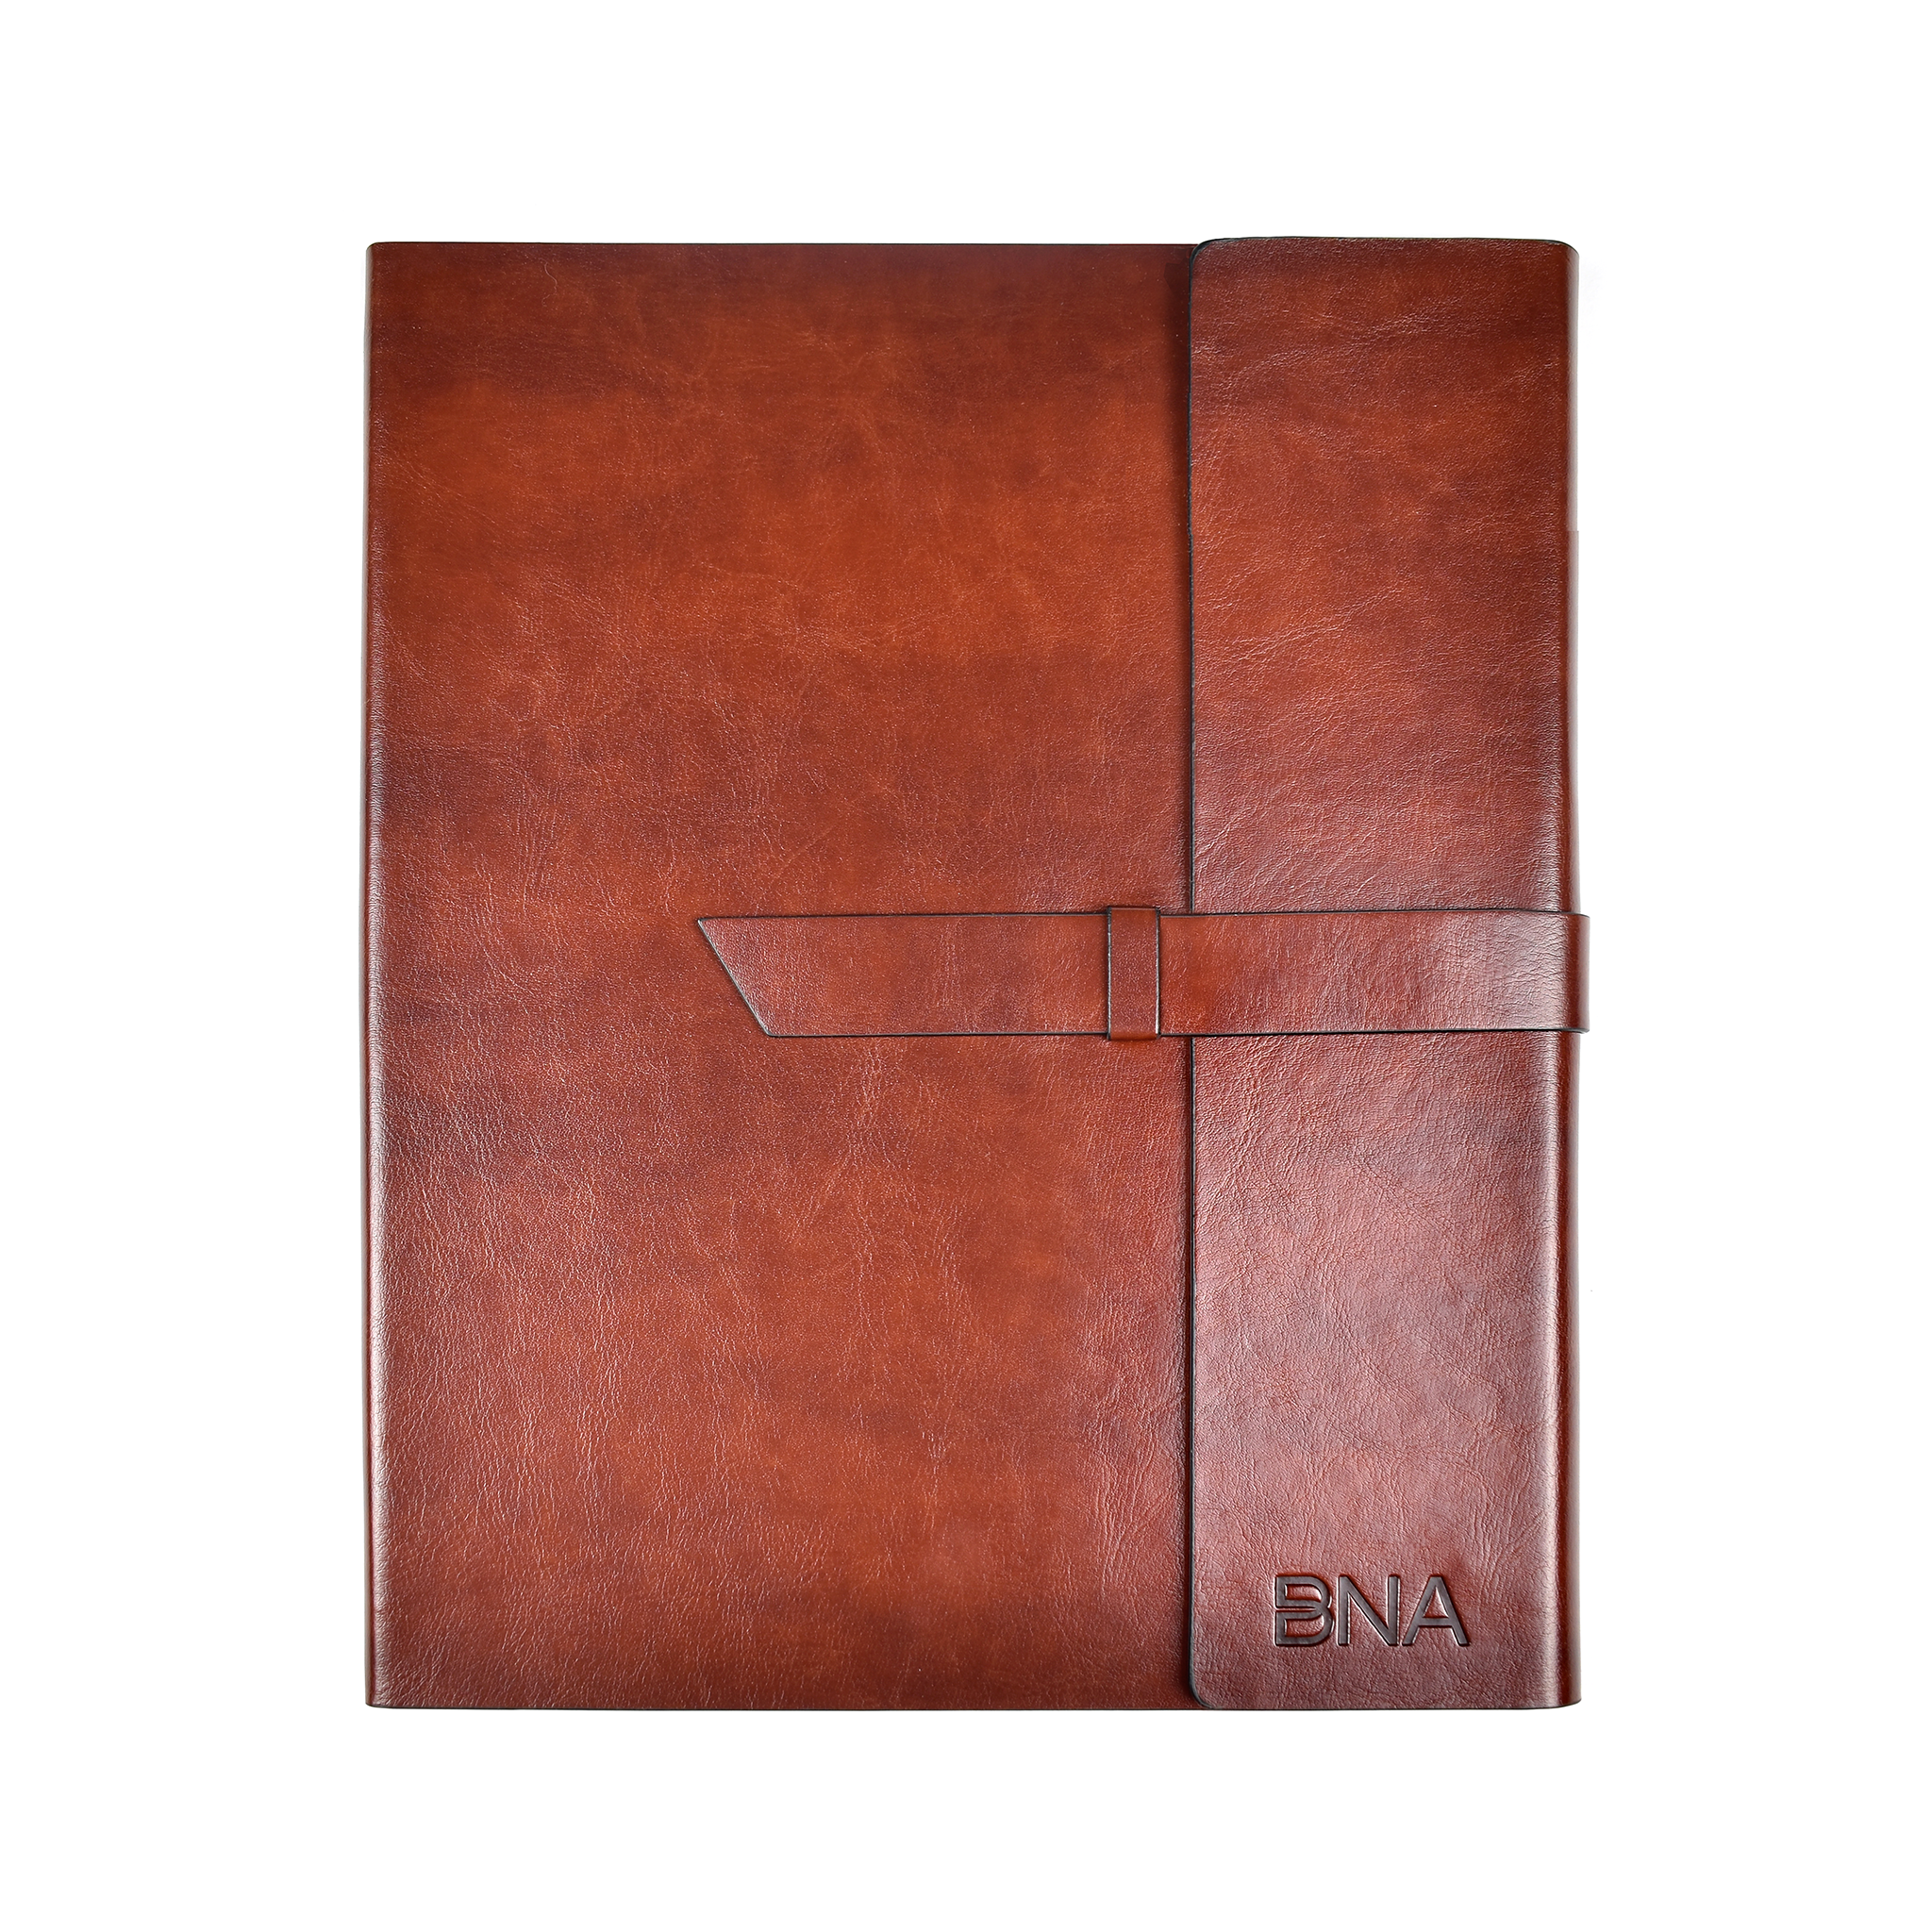 Full view of BNA embossed faux leather portfolio in cognac.